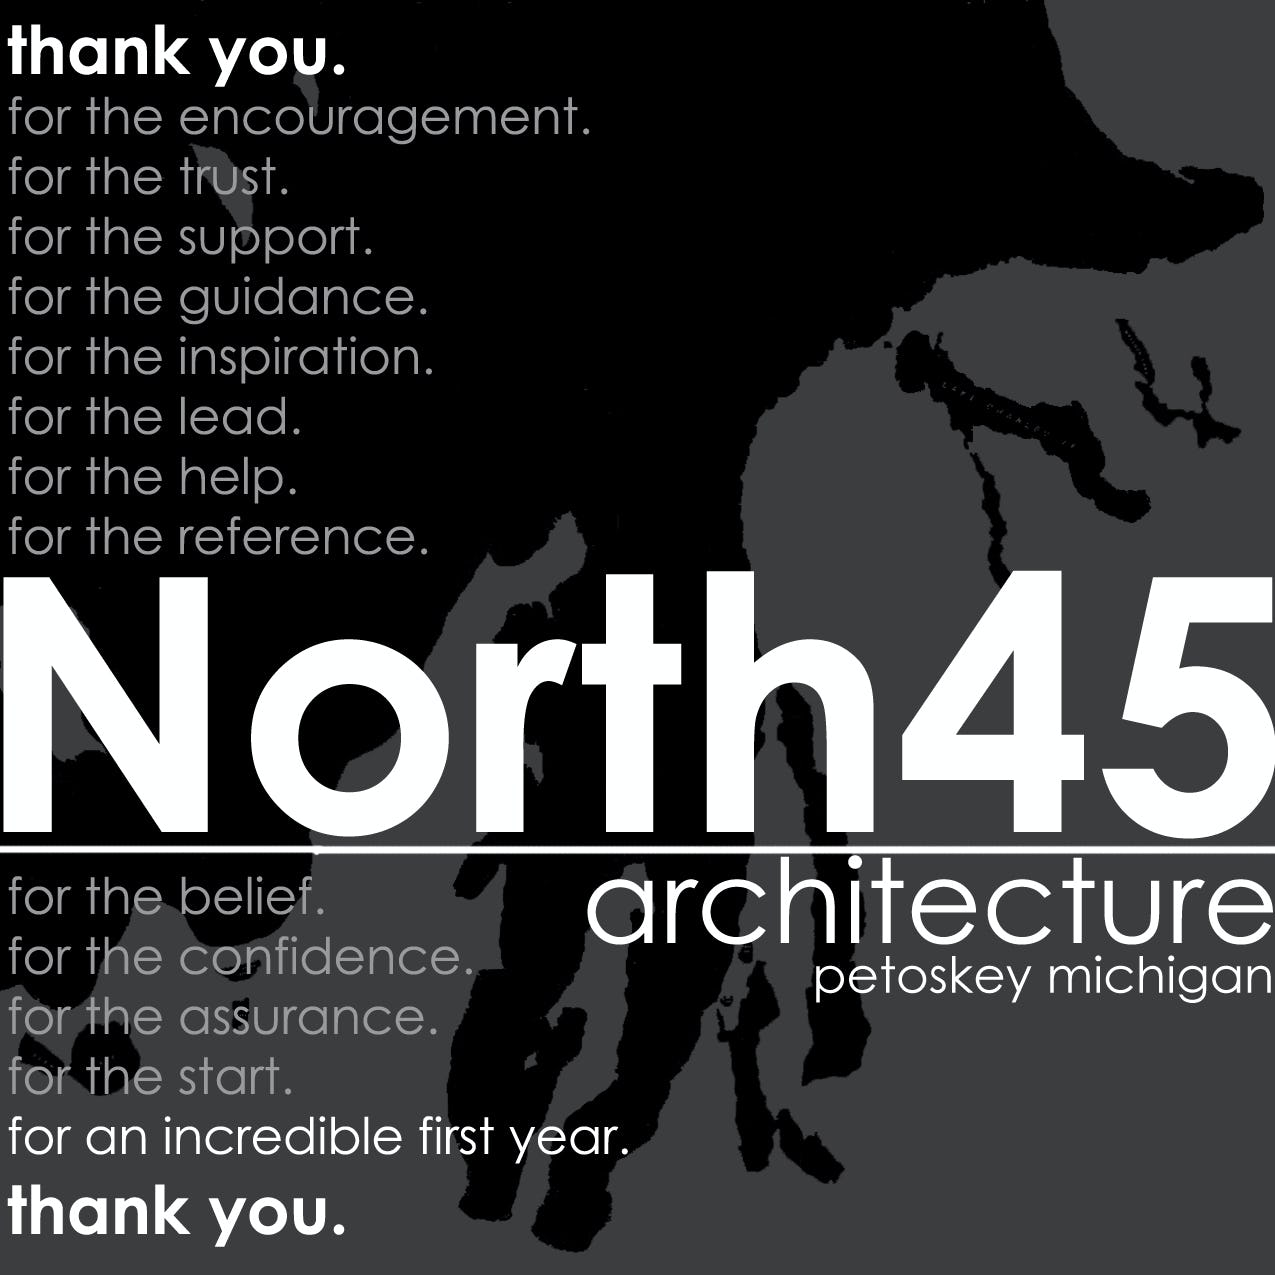 North45architecture thankyou final